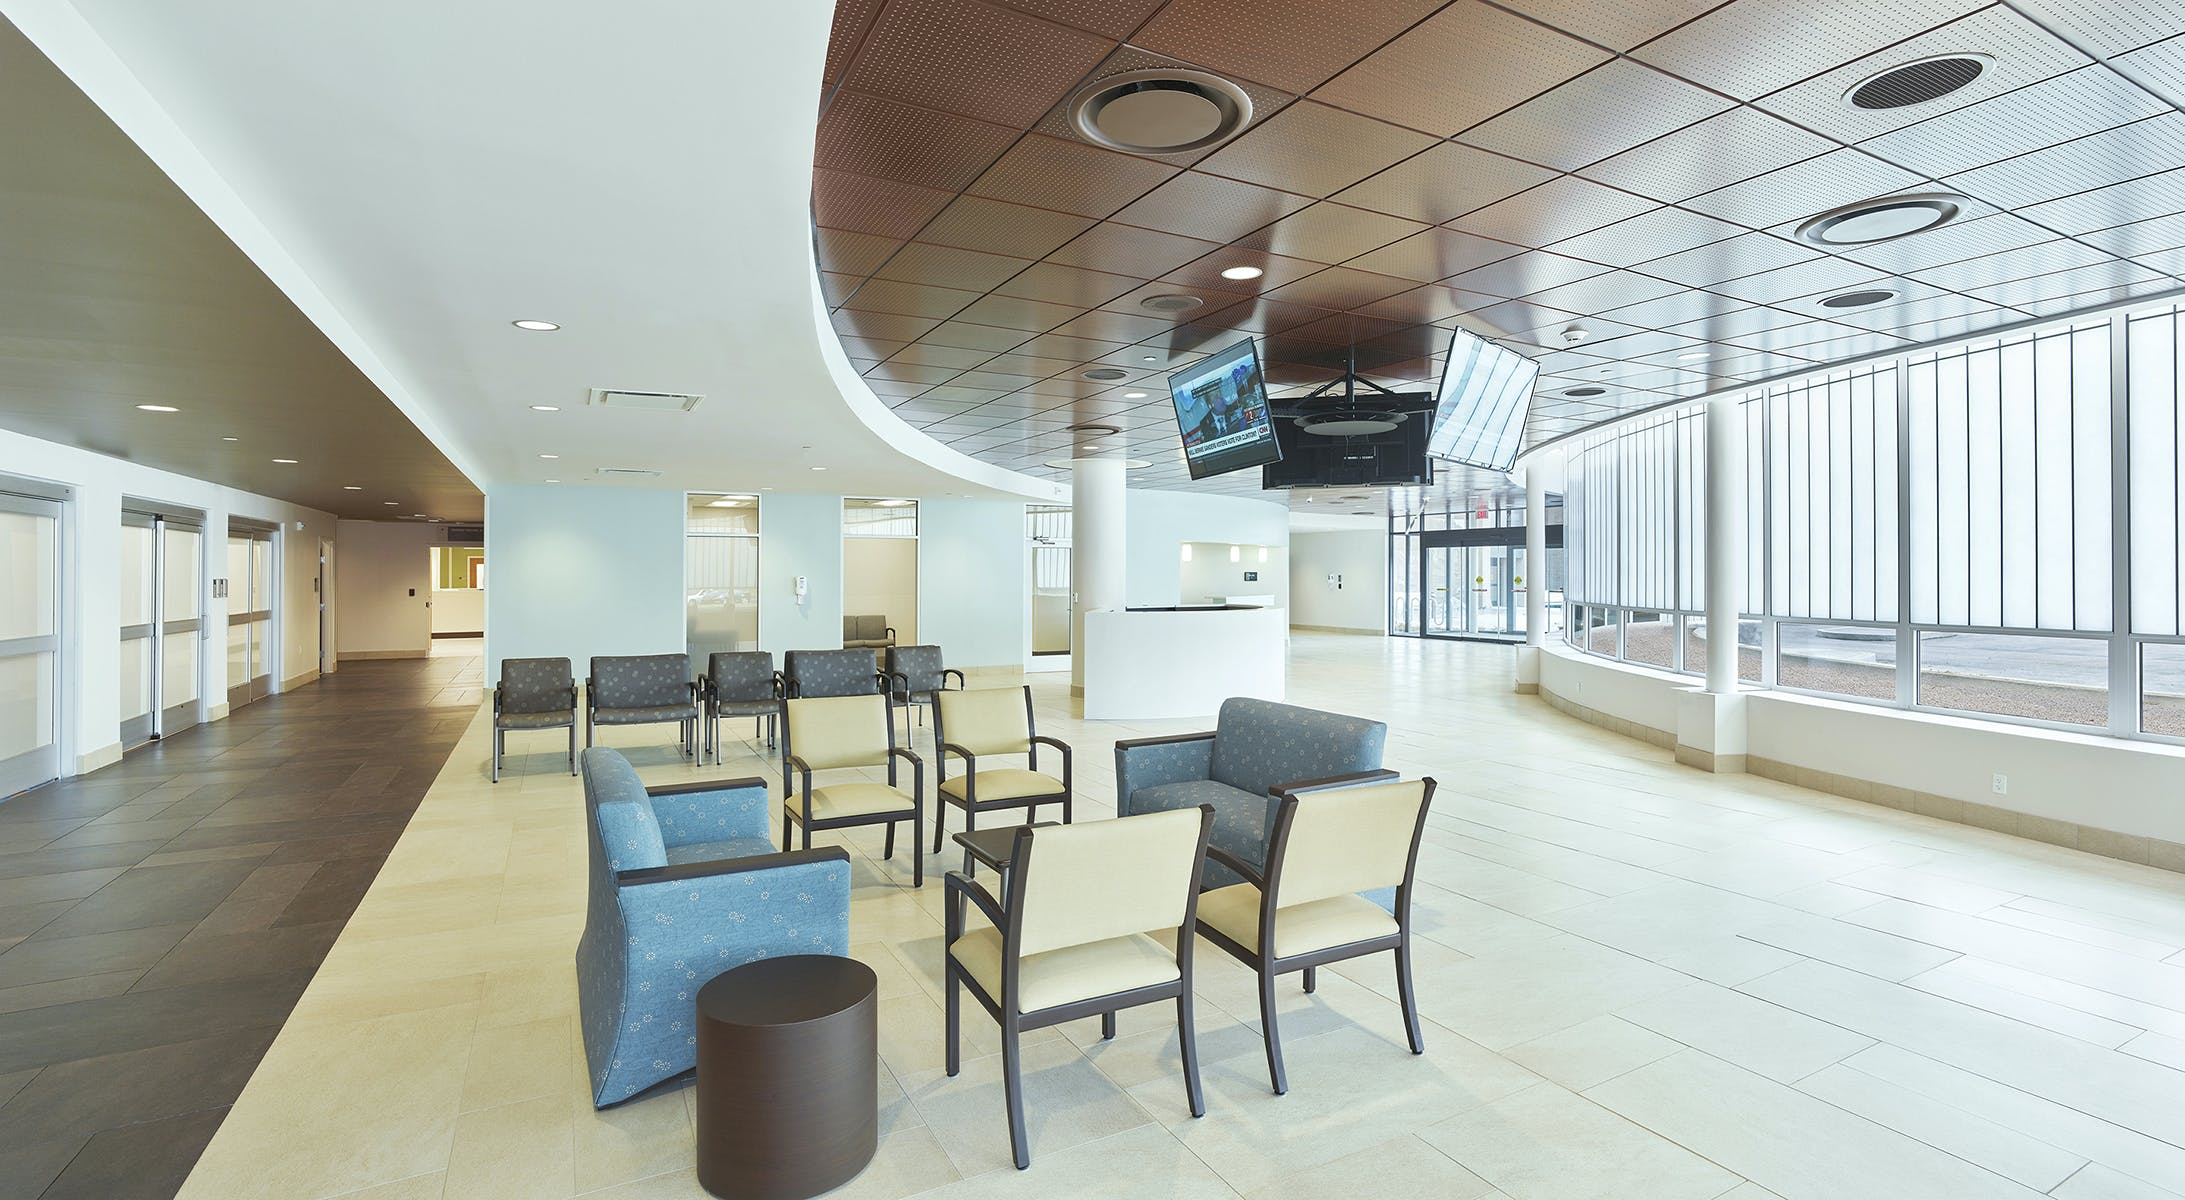 Methodist South Emergency Department | brg3s Architects | Archinect